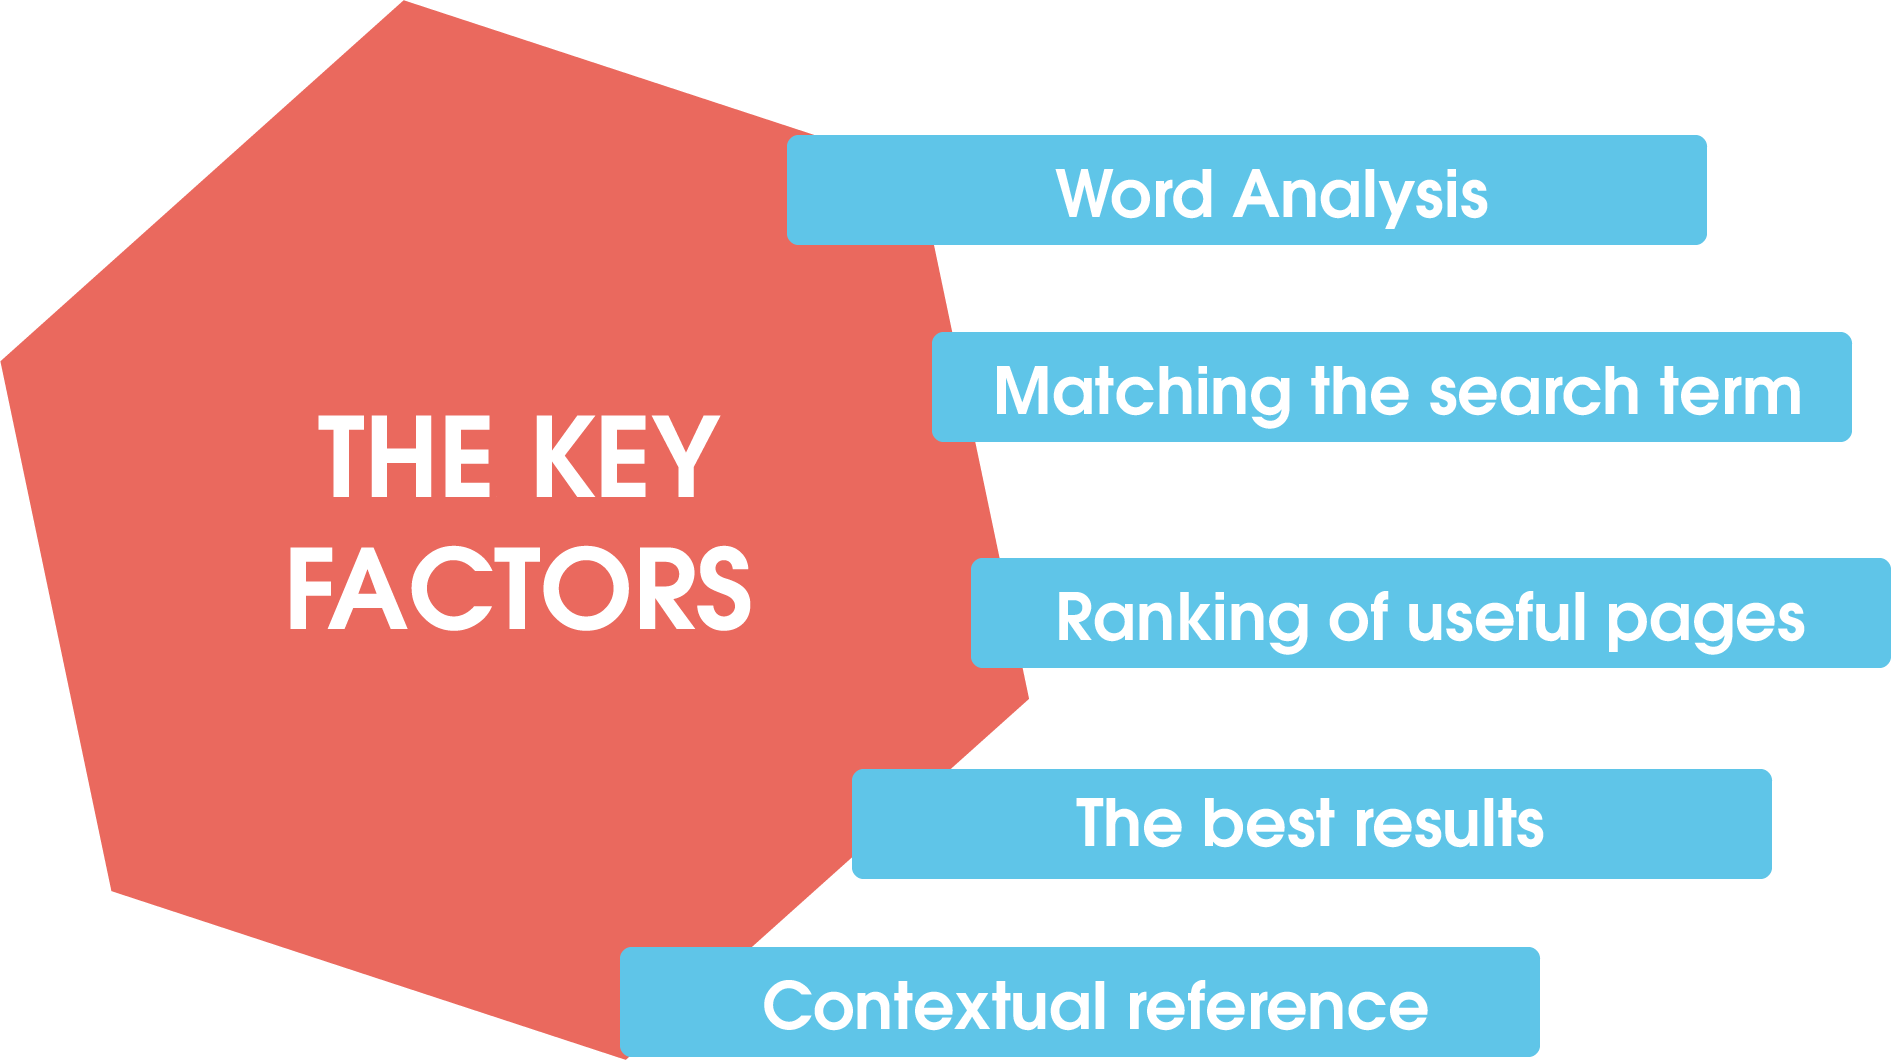 Key factors that determine what results you get